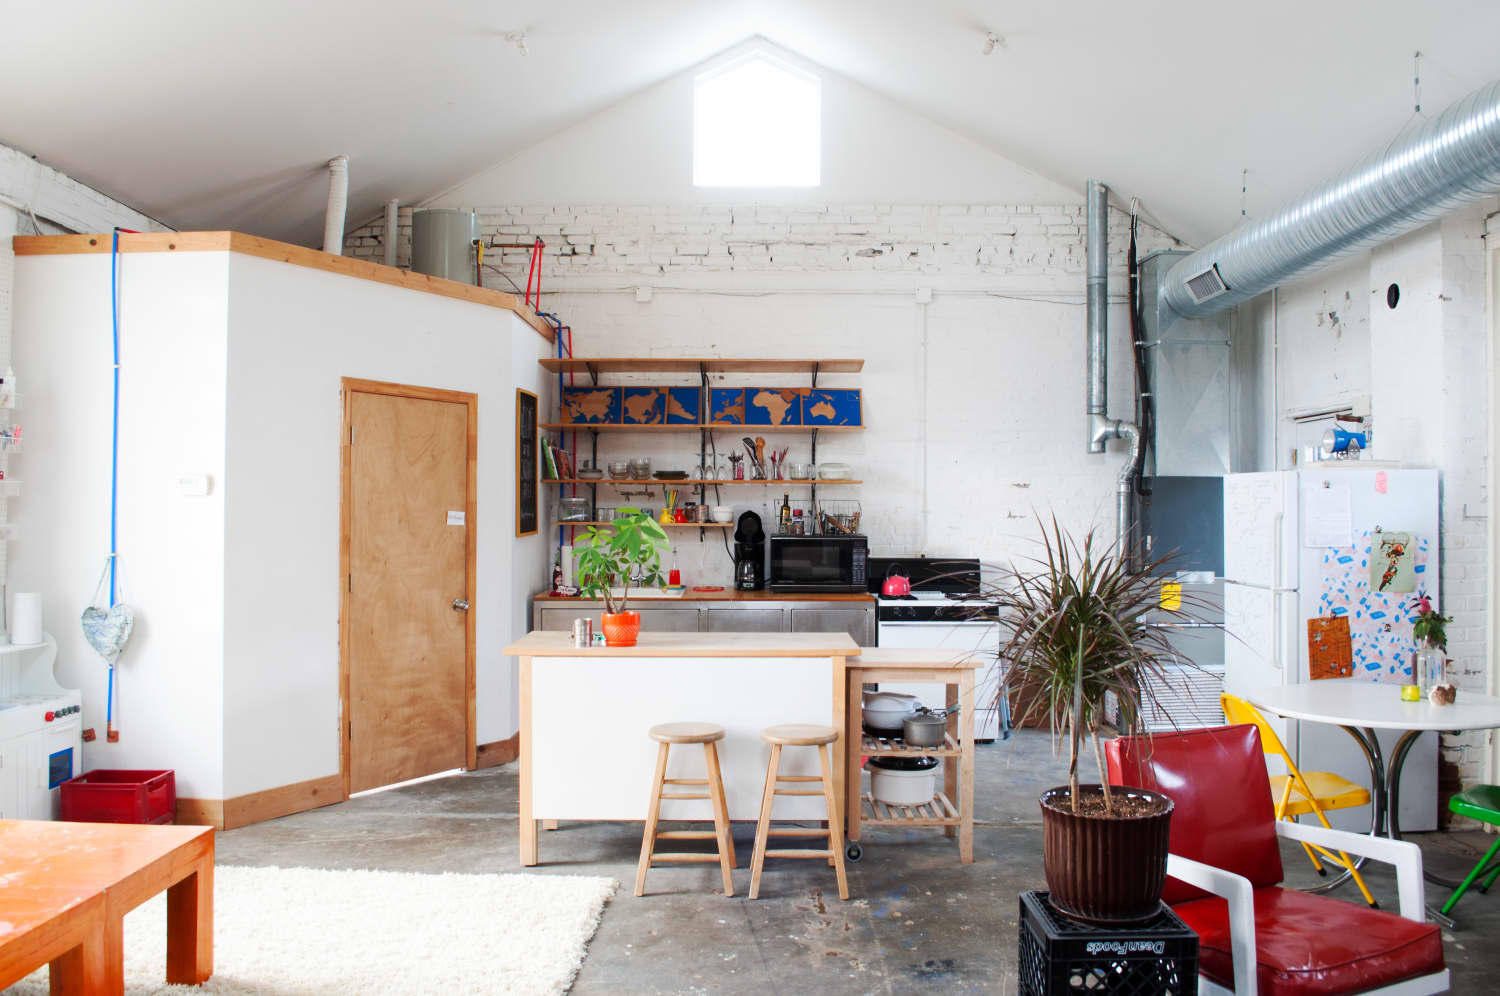 12 of the Most Brilliant Storage Ideas for Small Kitchens